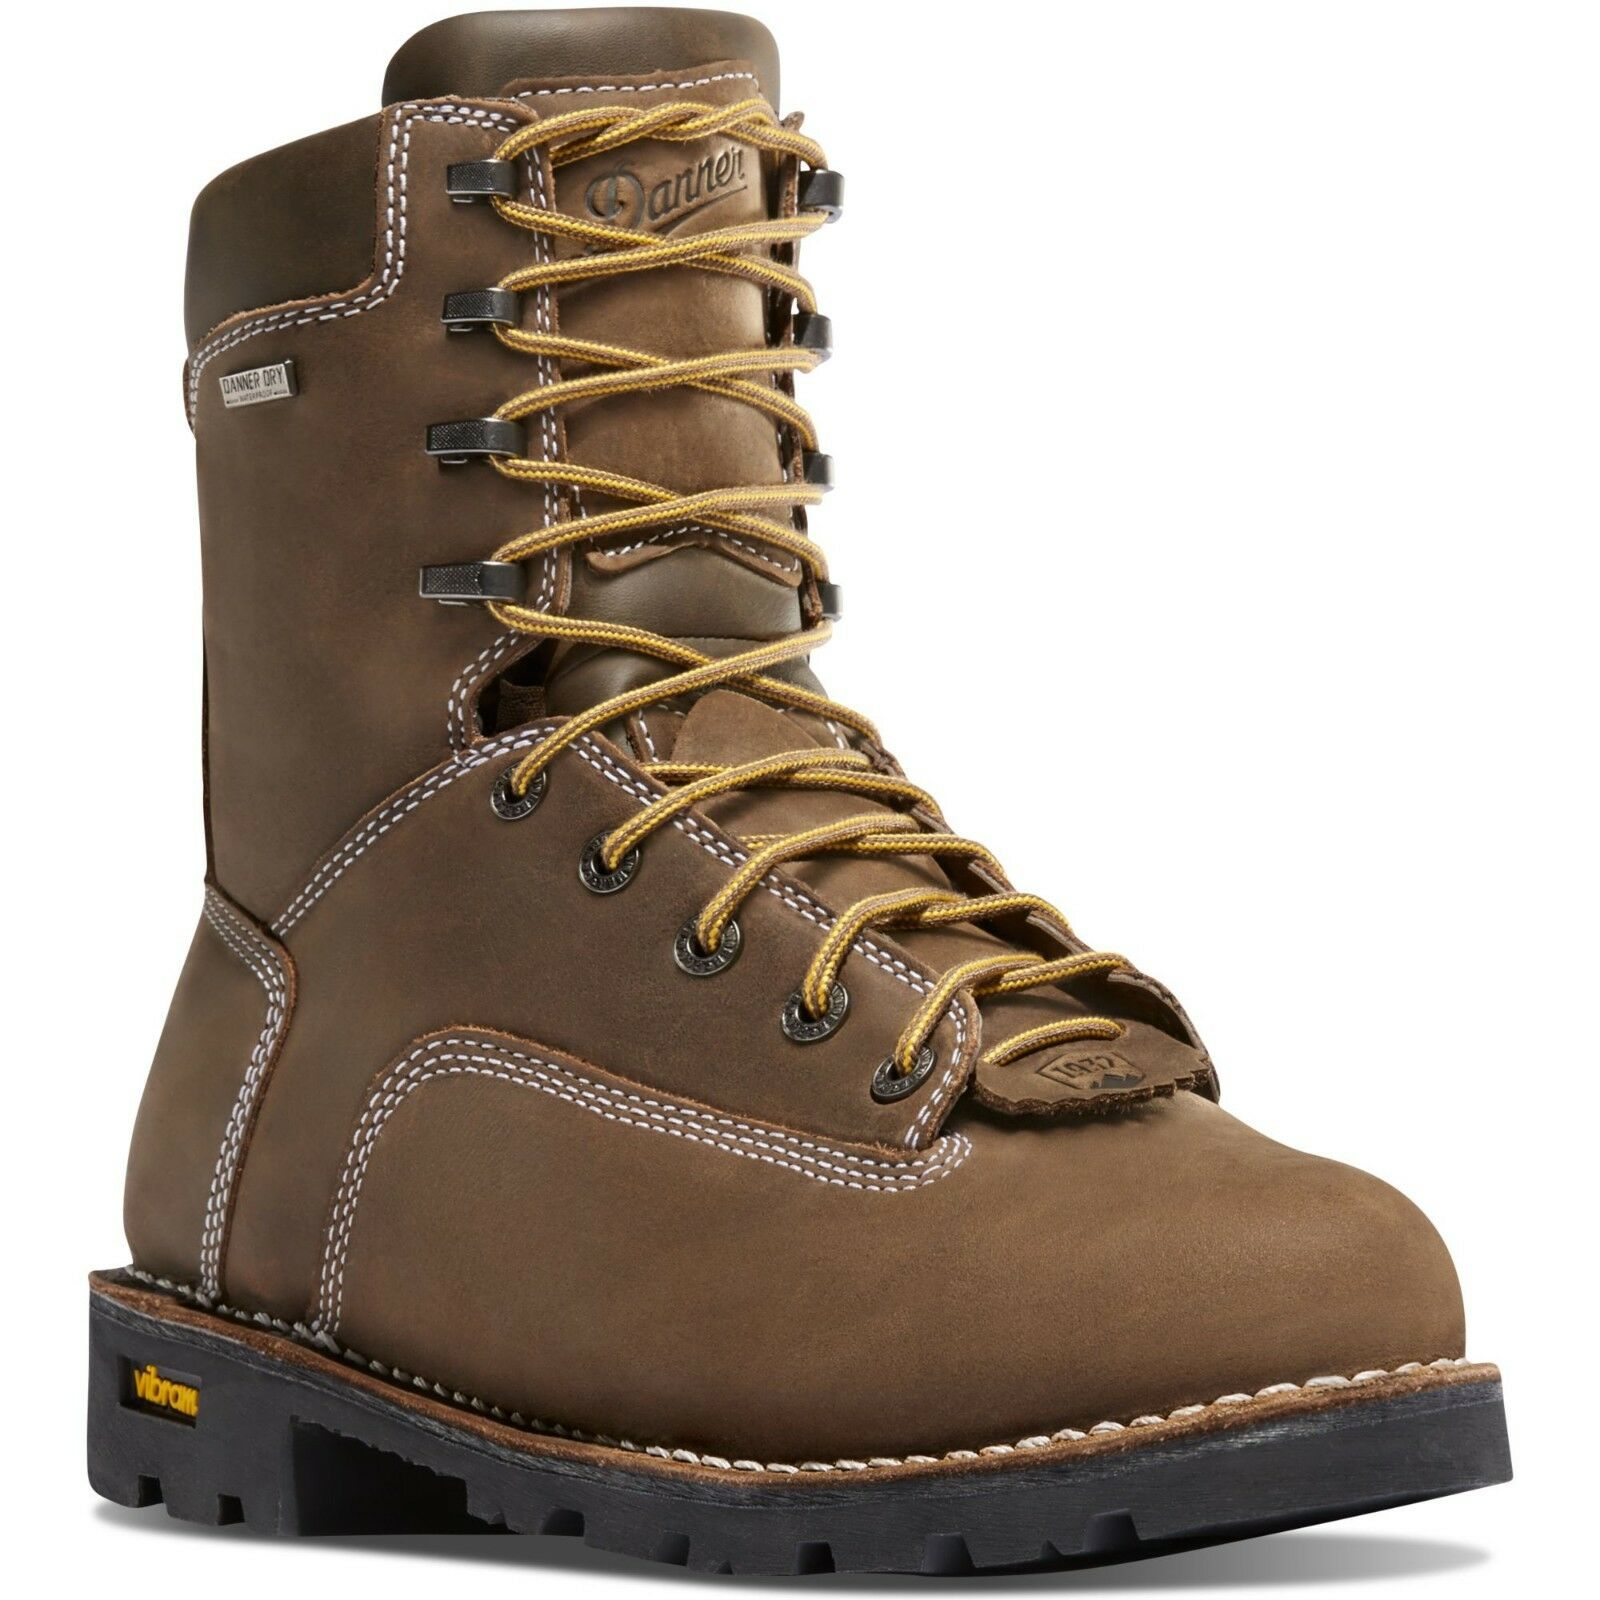 Danner Men's 14230 Gritstone 8  Marroneee 400G Insulated Comp Toe Work Safety stivali